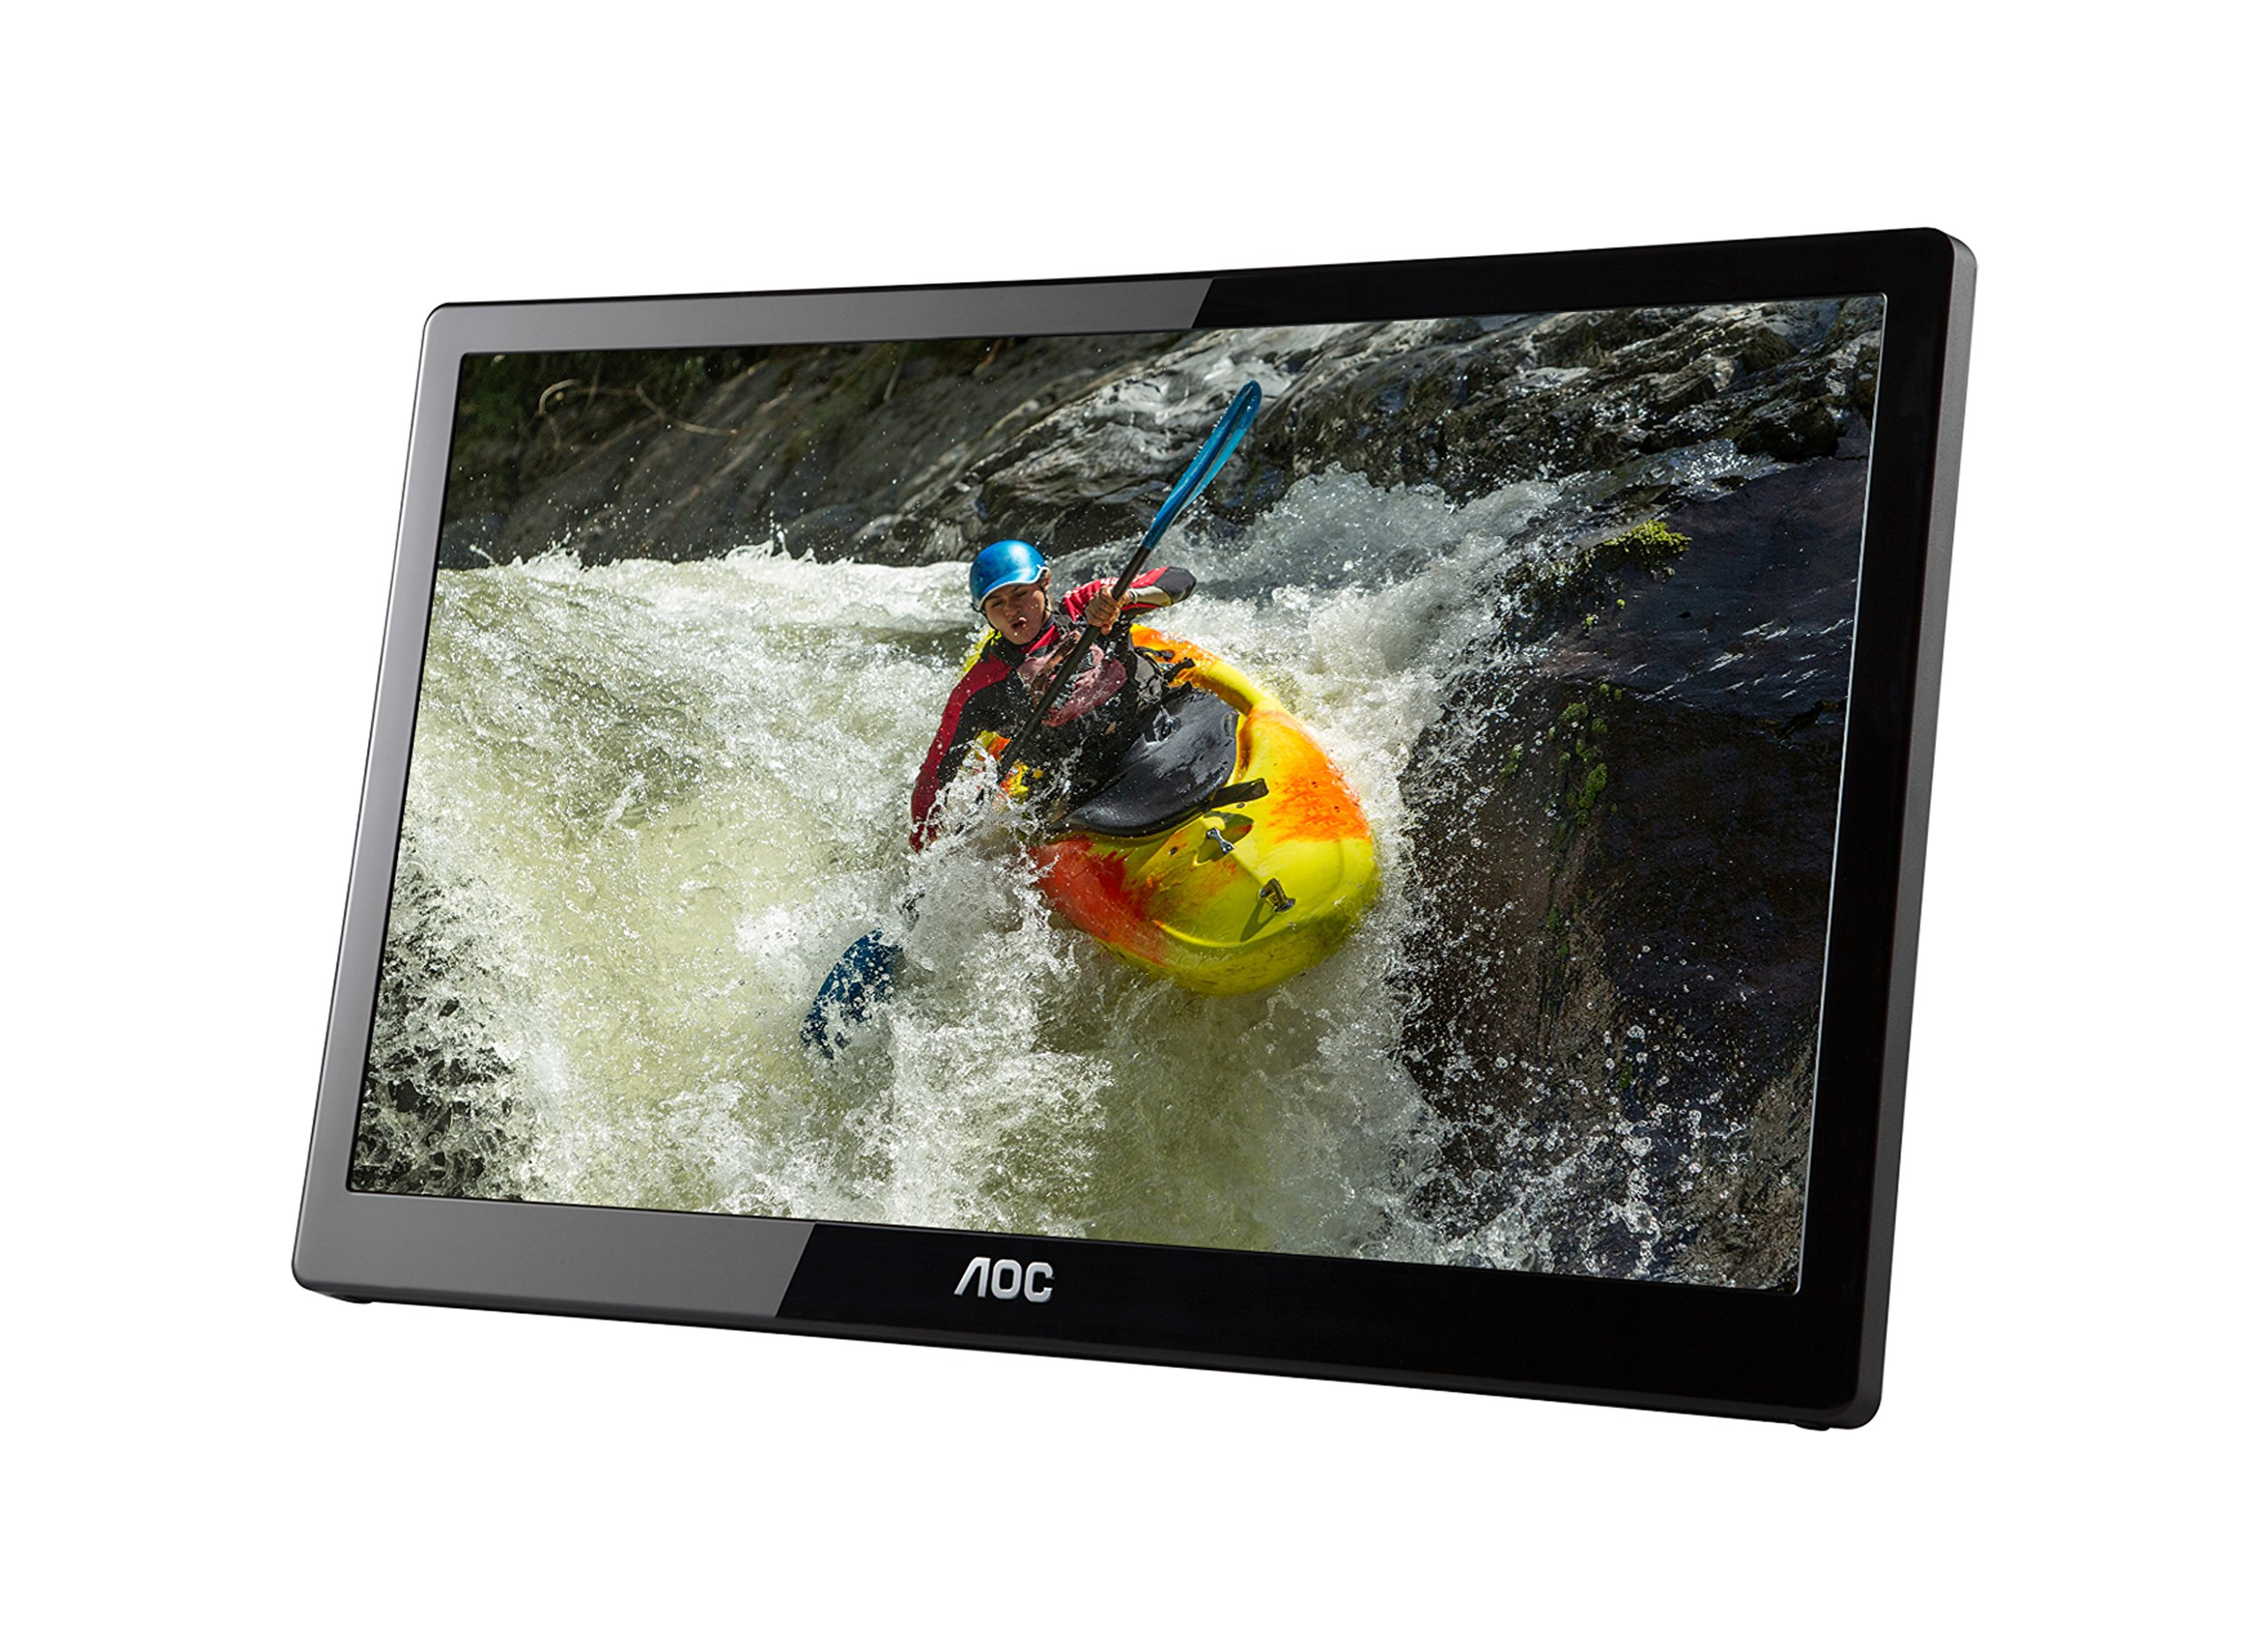 AOC e1659Fwux- Pro 15.6-Inch Class, Full HD 1920x1080 Res, 300 cd/m2 Brightness, USB 3.0-Powered, Portable LED Monitor